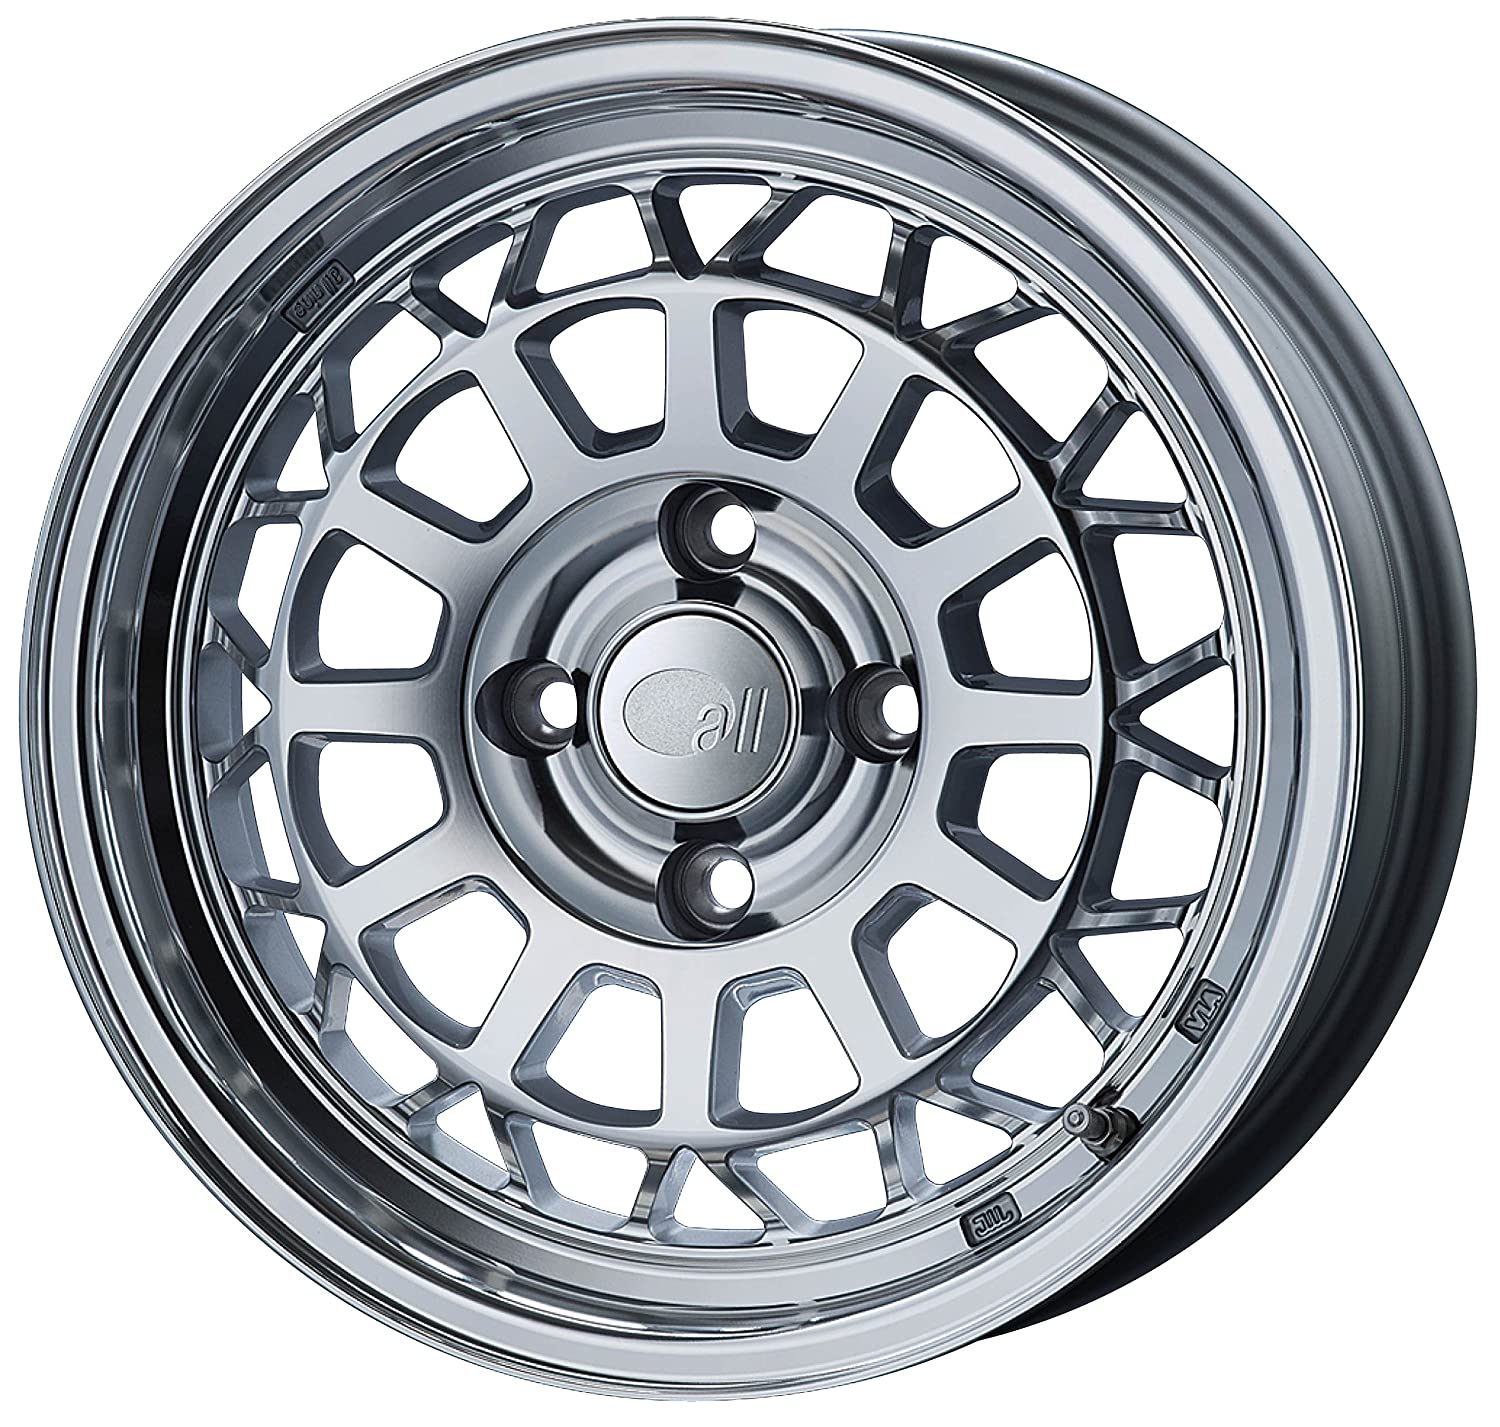 エンケイ アルミホイール all nine 15 x 6.0J +35 4H 98 Mirror Polish AL9-560-35-4B-MF B06VV4D84C